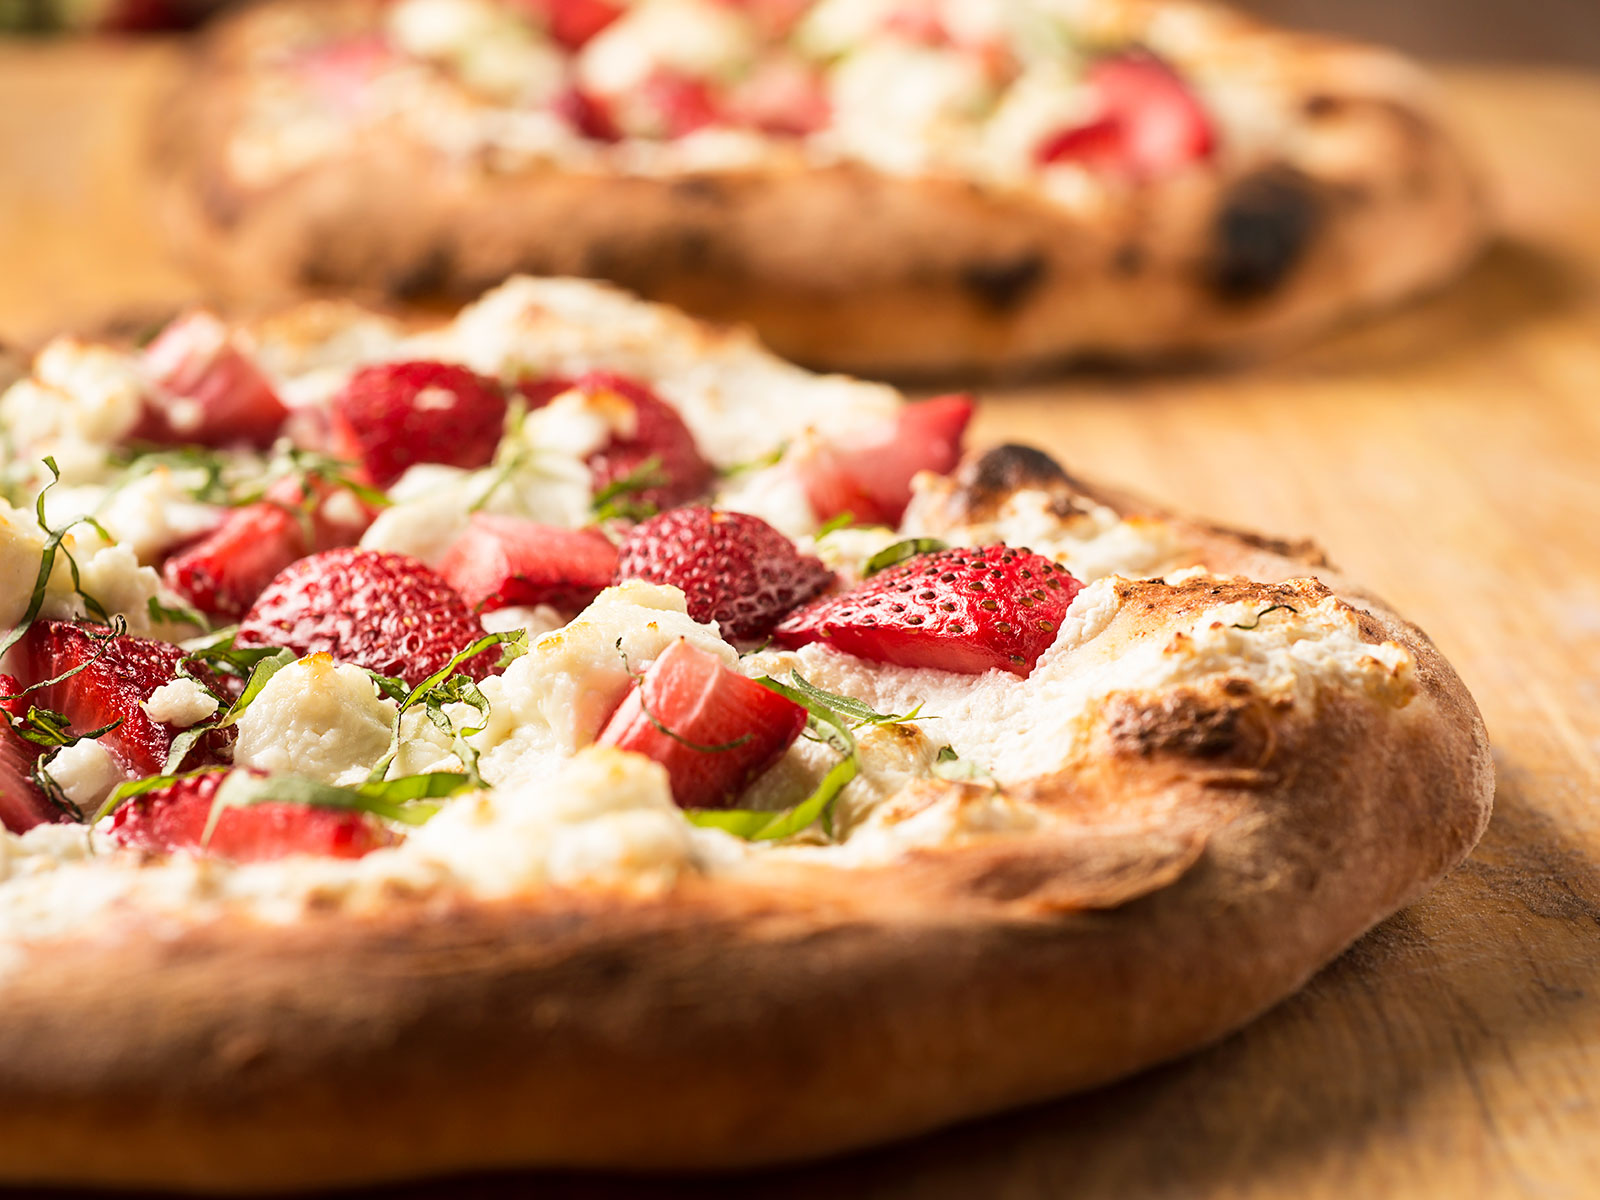 strawberries on pizza